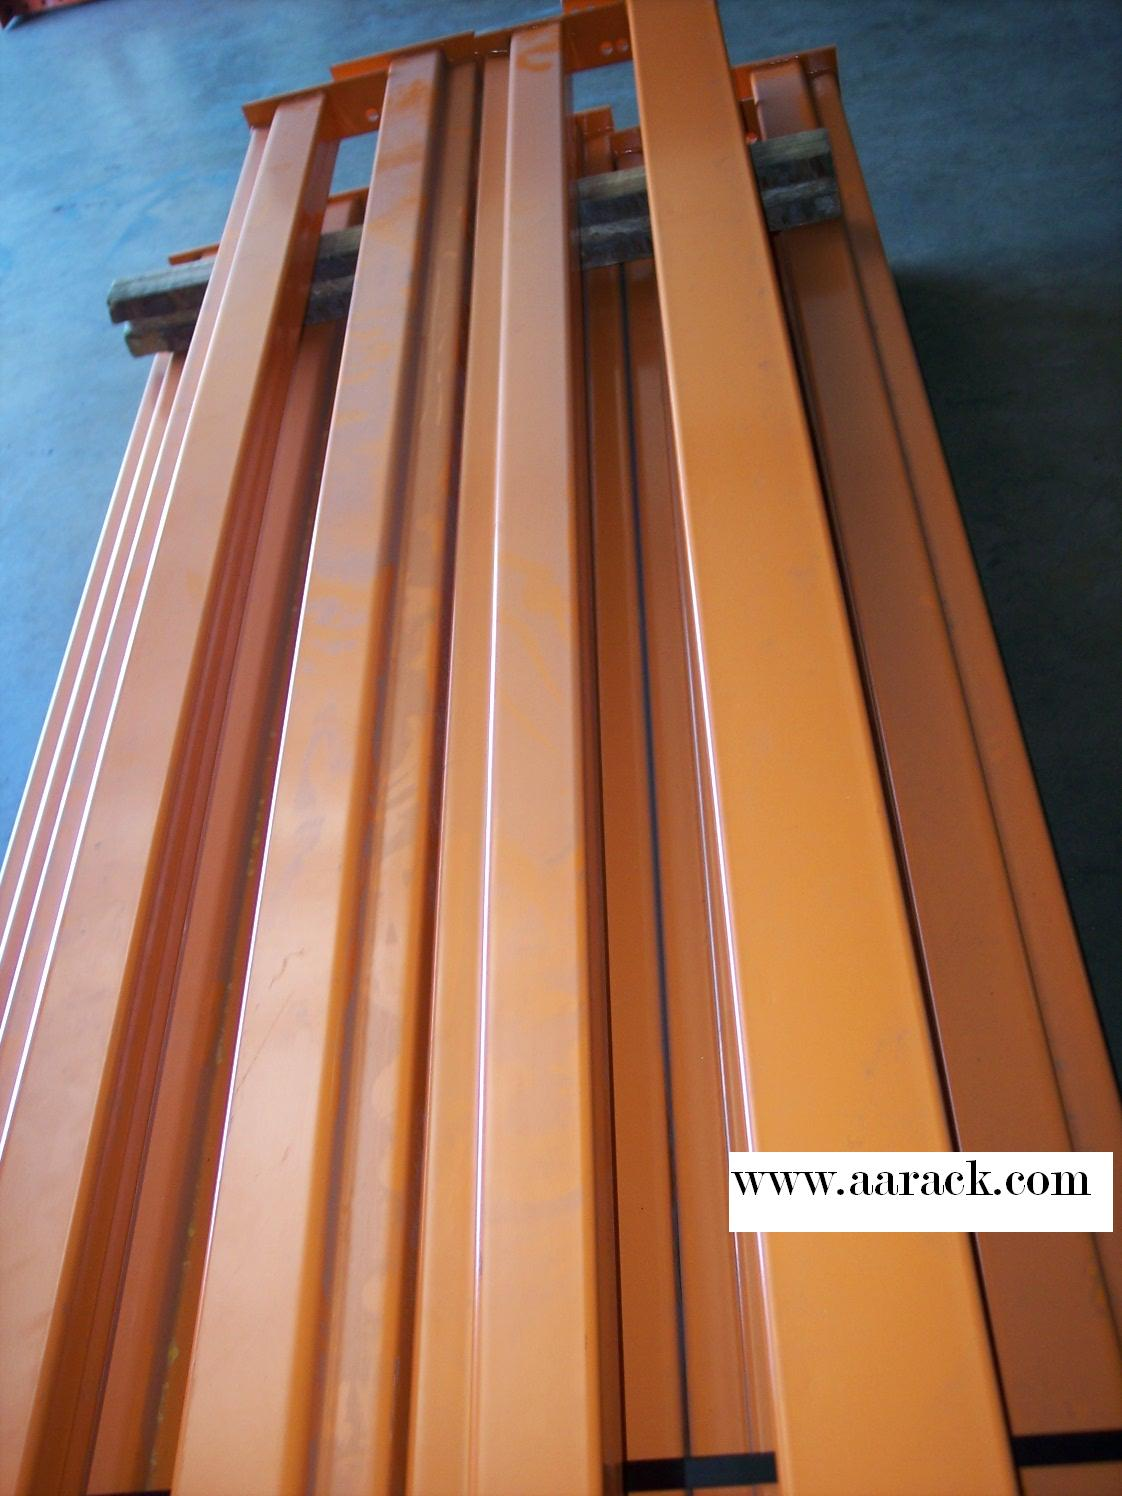 pallet rack step beams and wire decks all american rack company